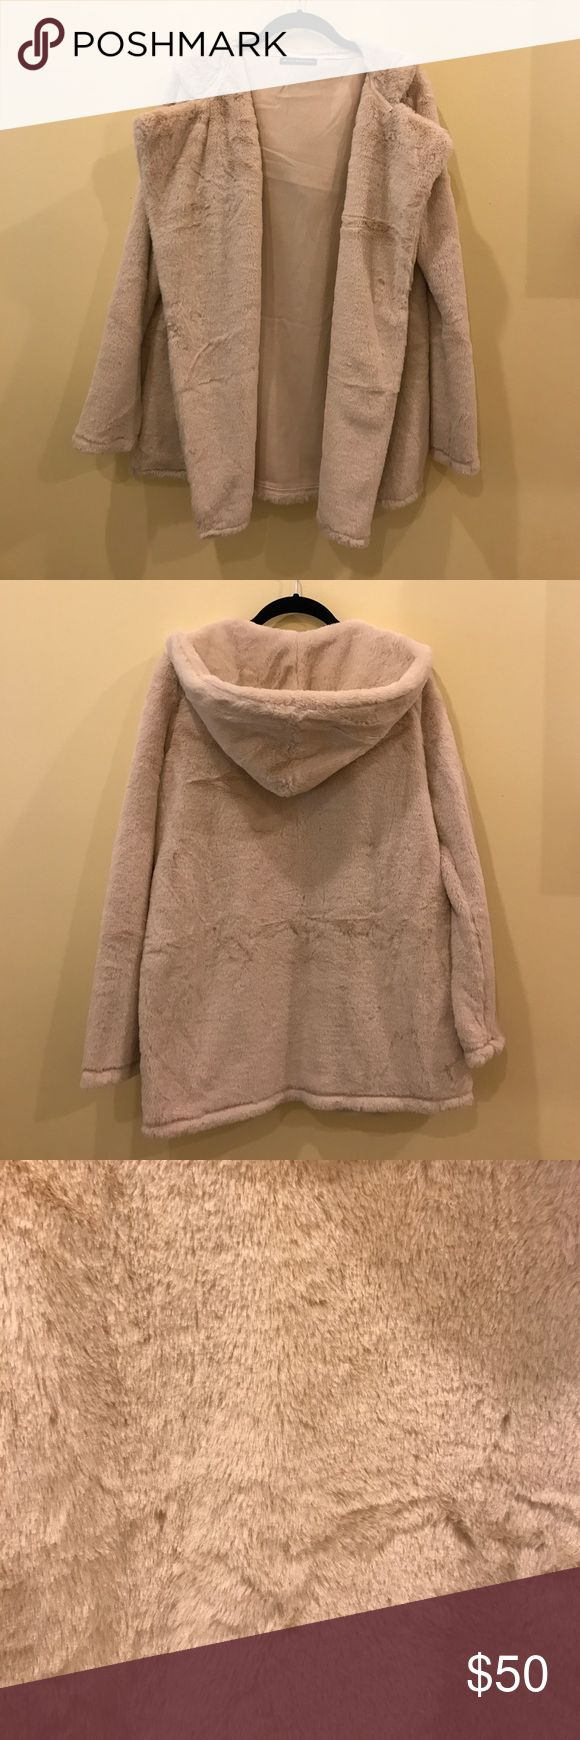 "Brandy Melville Faux Fur Hooded Coat No closure cream color faux fur hooded coat from Brandy Melville. *Never worn. *No size tag. *Approximate measurements: shoulder to shoulder: 17"", length: 28"", sleeve length: 25"". Brandy Melville Jackets & Coats"